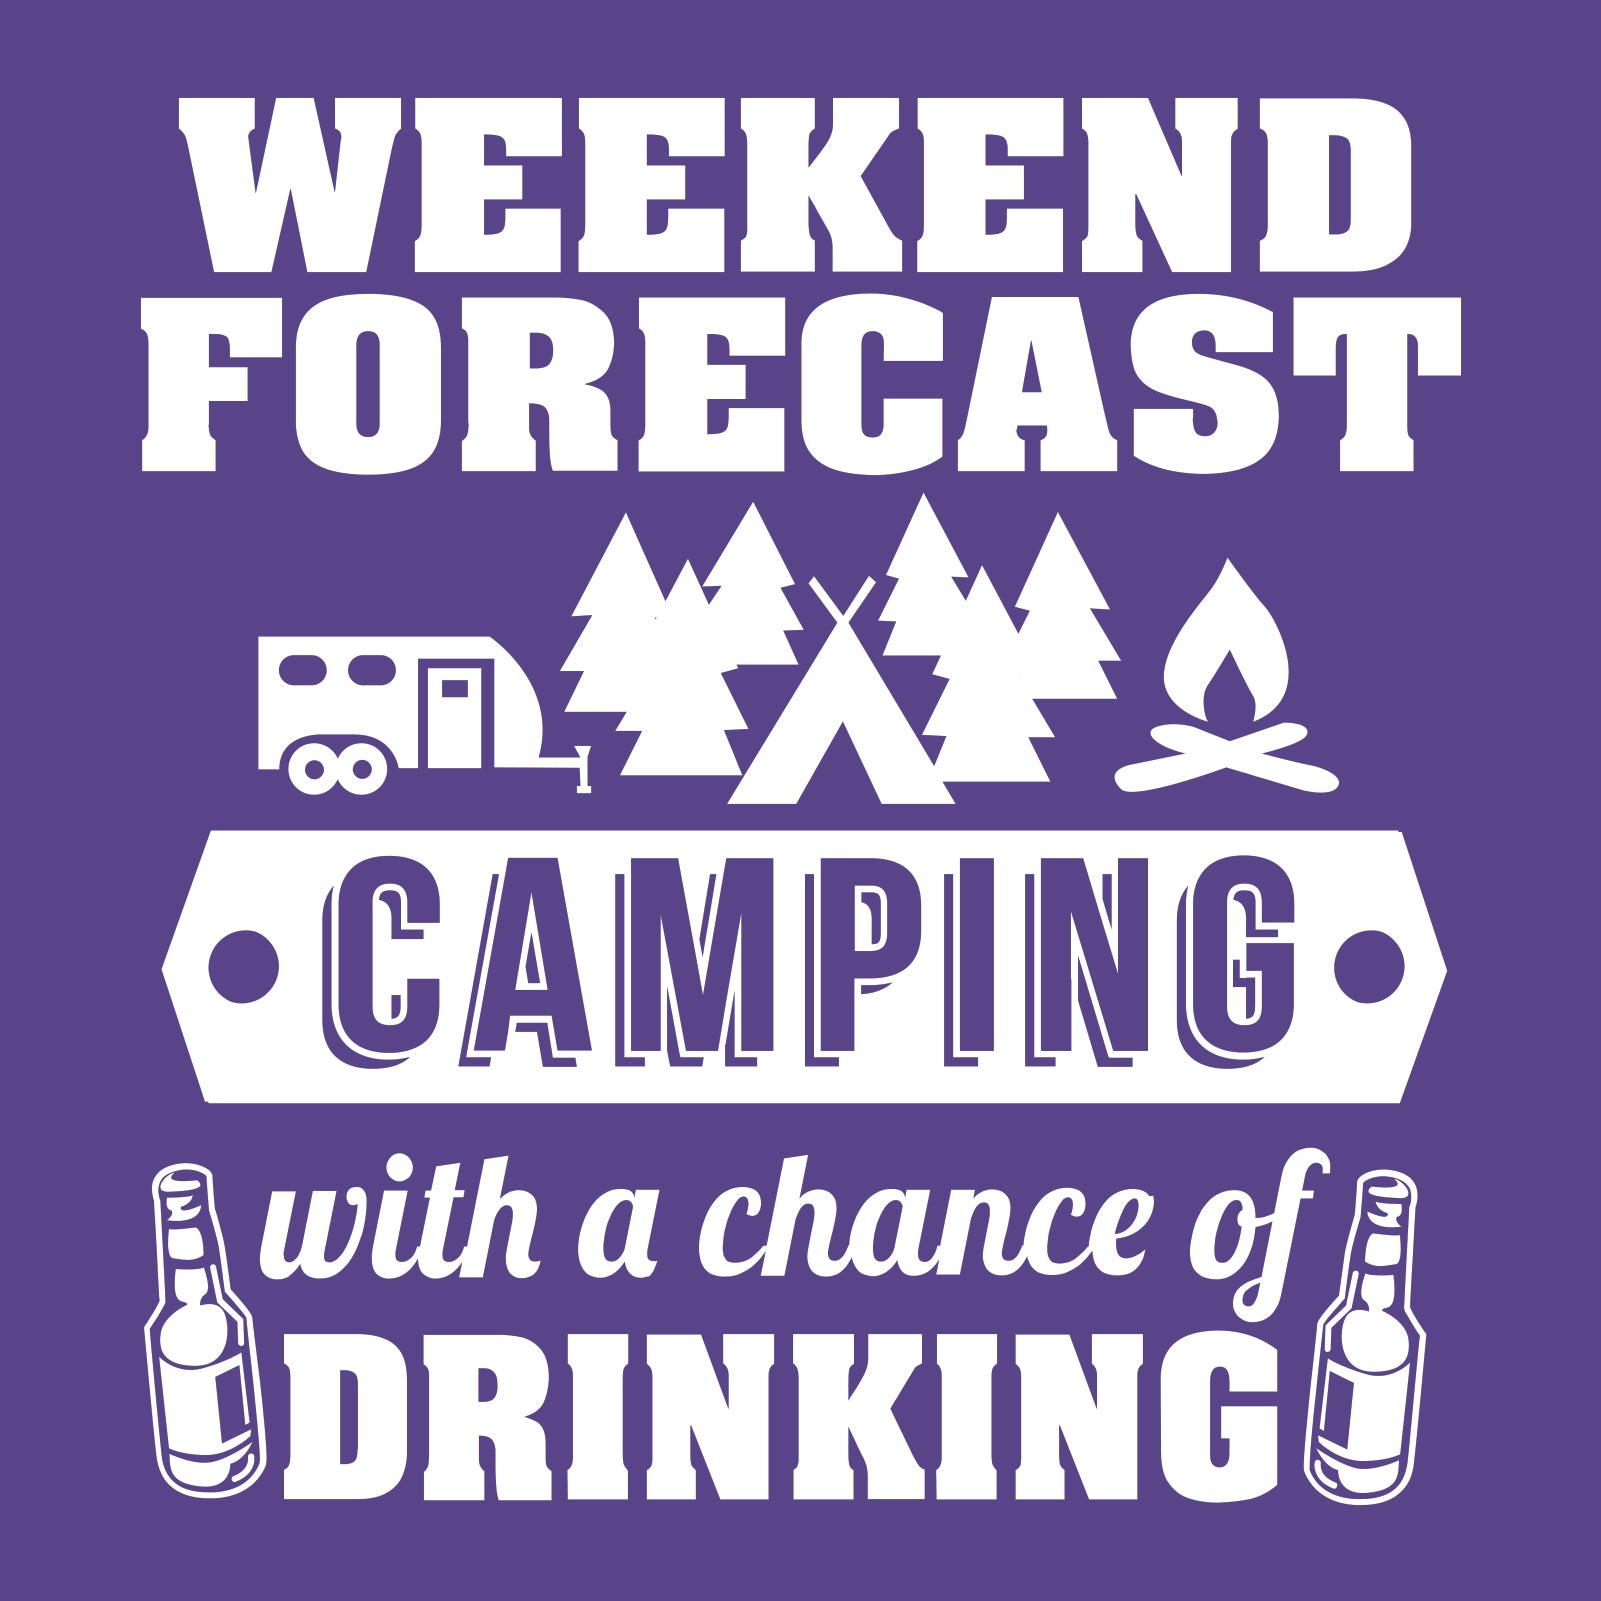 4923fd814 ... Weekend Forecast Camping With a Chance of Drinking - Hiking, Outdoors,  Nature, Fishing ...